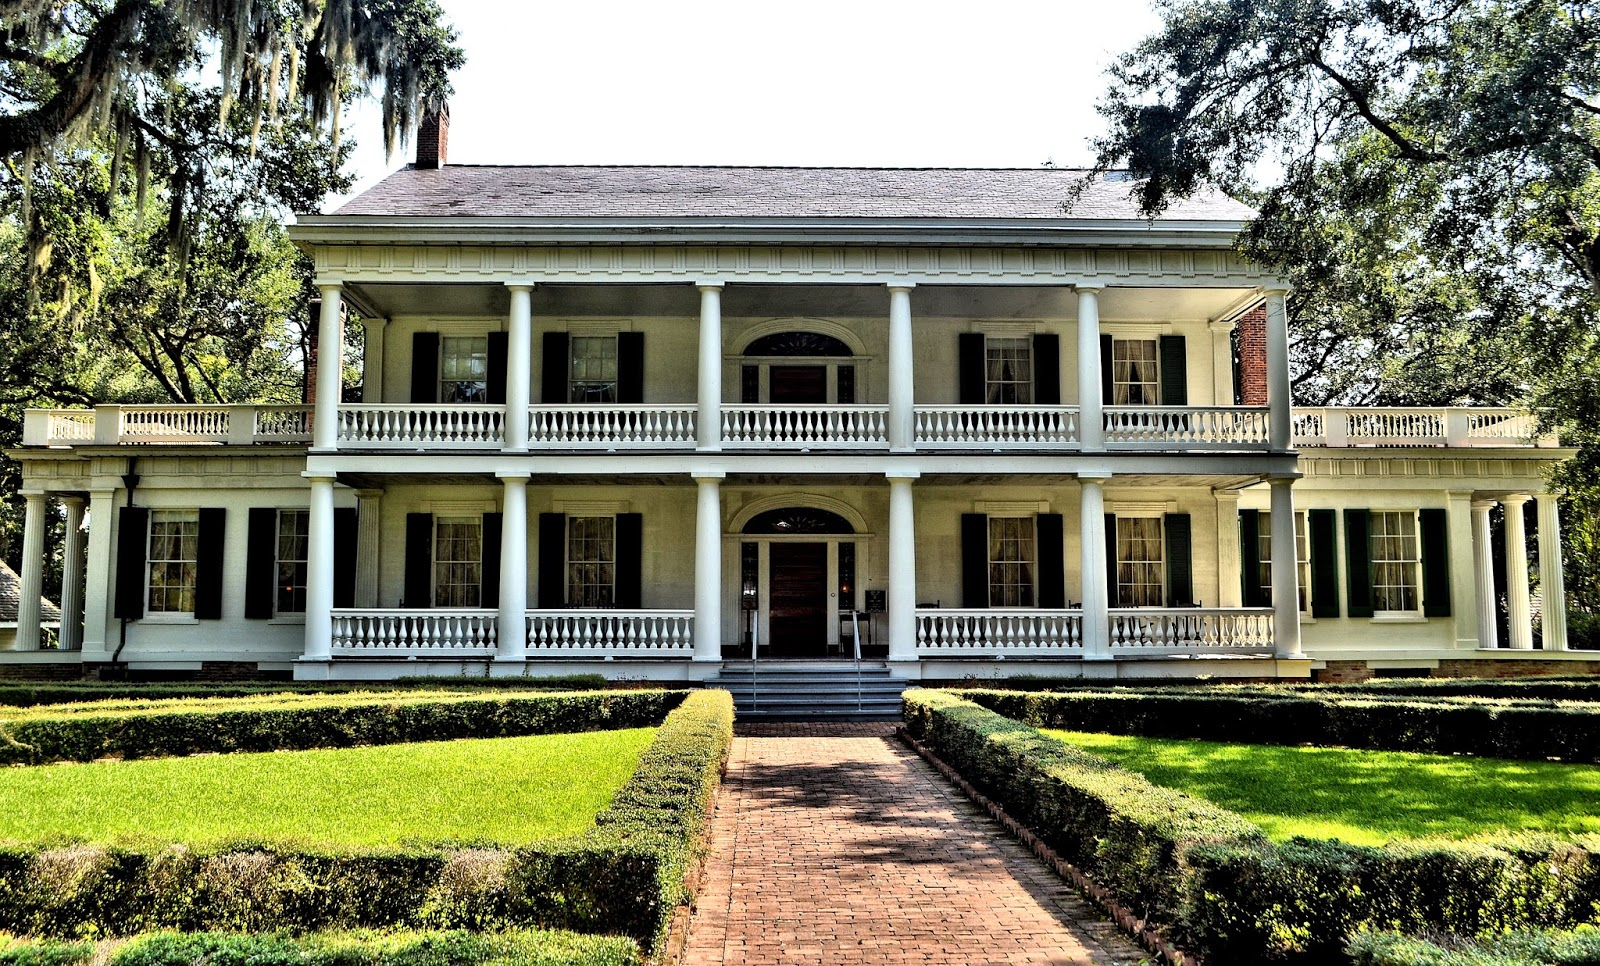 217734 besides Magnolia Plantation Floor Plans additionally Paint Colors For 2013 as well Interior Design Screening further New Year Interior Design. on newest trend house design